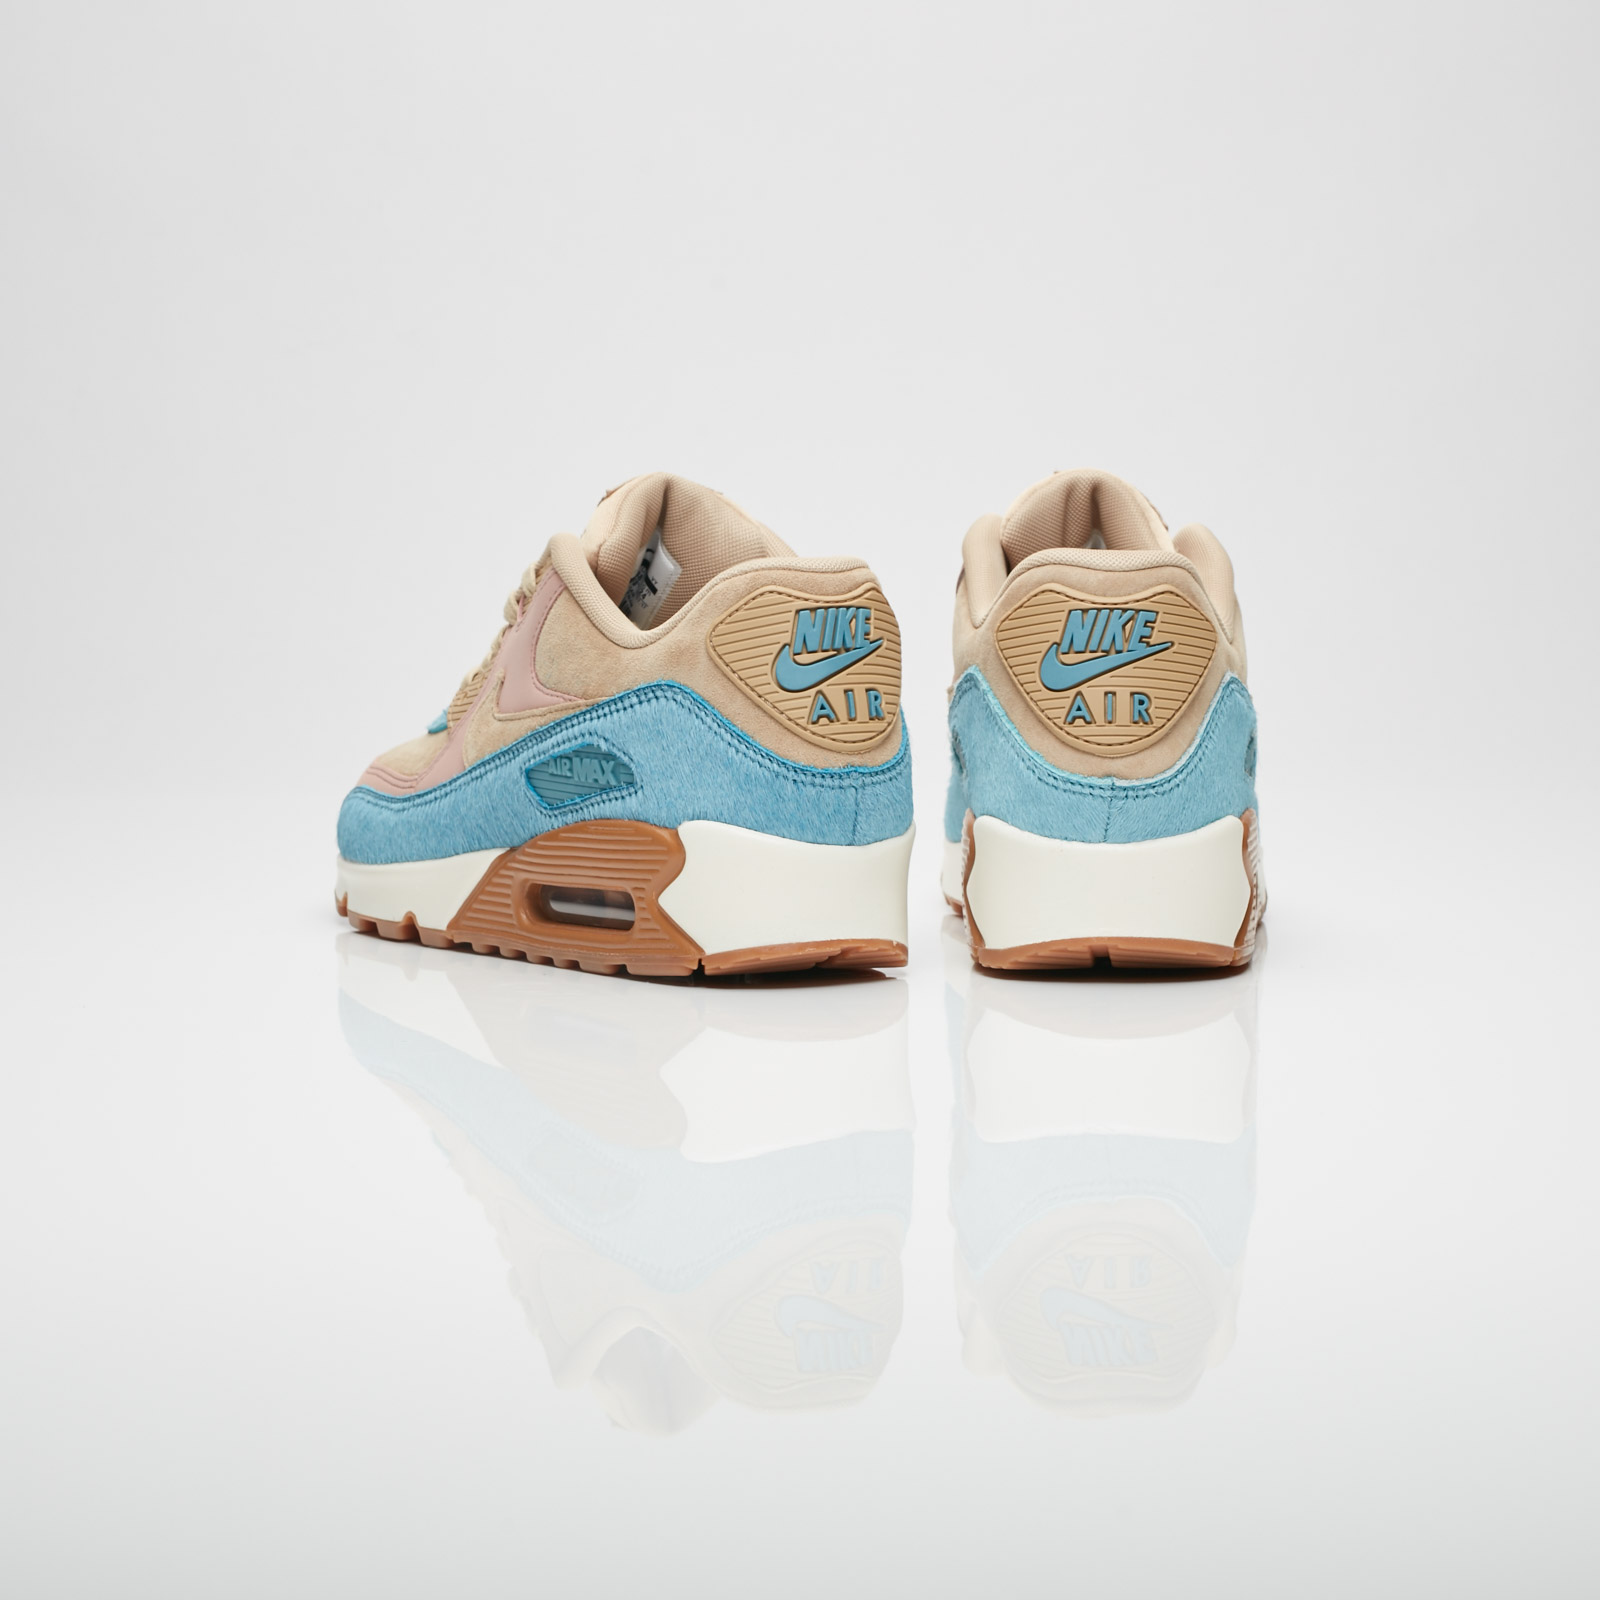 separation shoes fe9ad ab53c Nike Wmns Air Max 90 LX - 898512-200 - Sneakersnstuff   sneakers    streetwear online since 1999